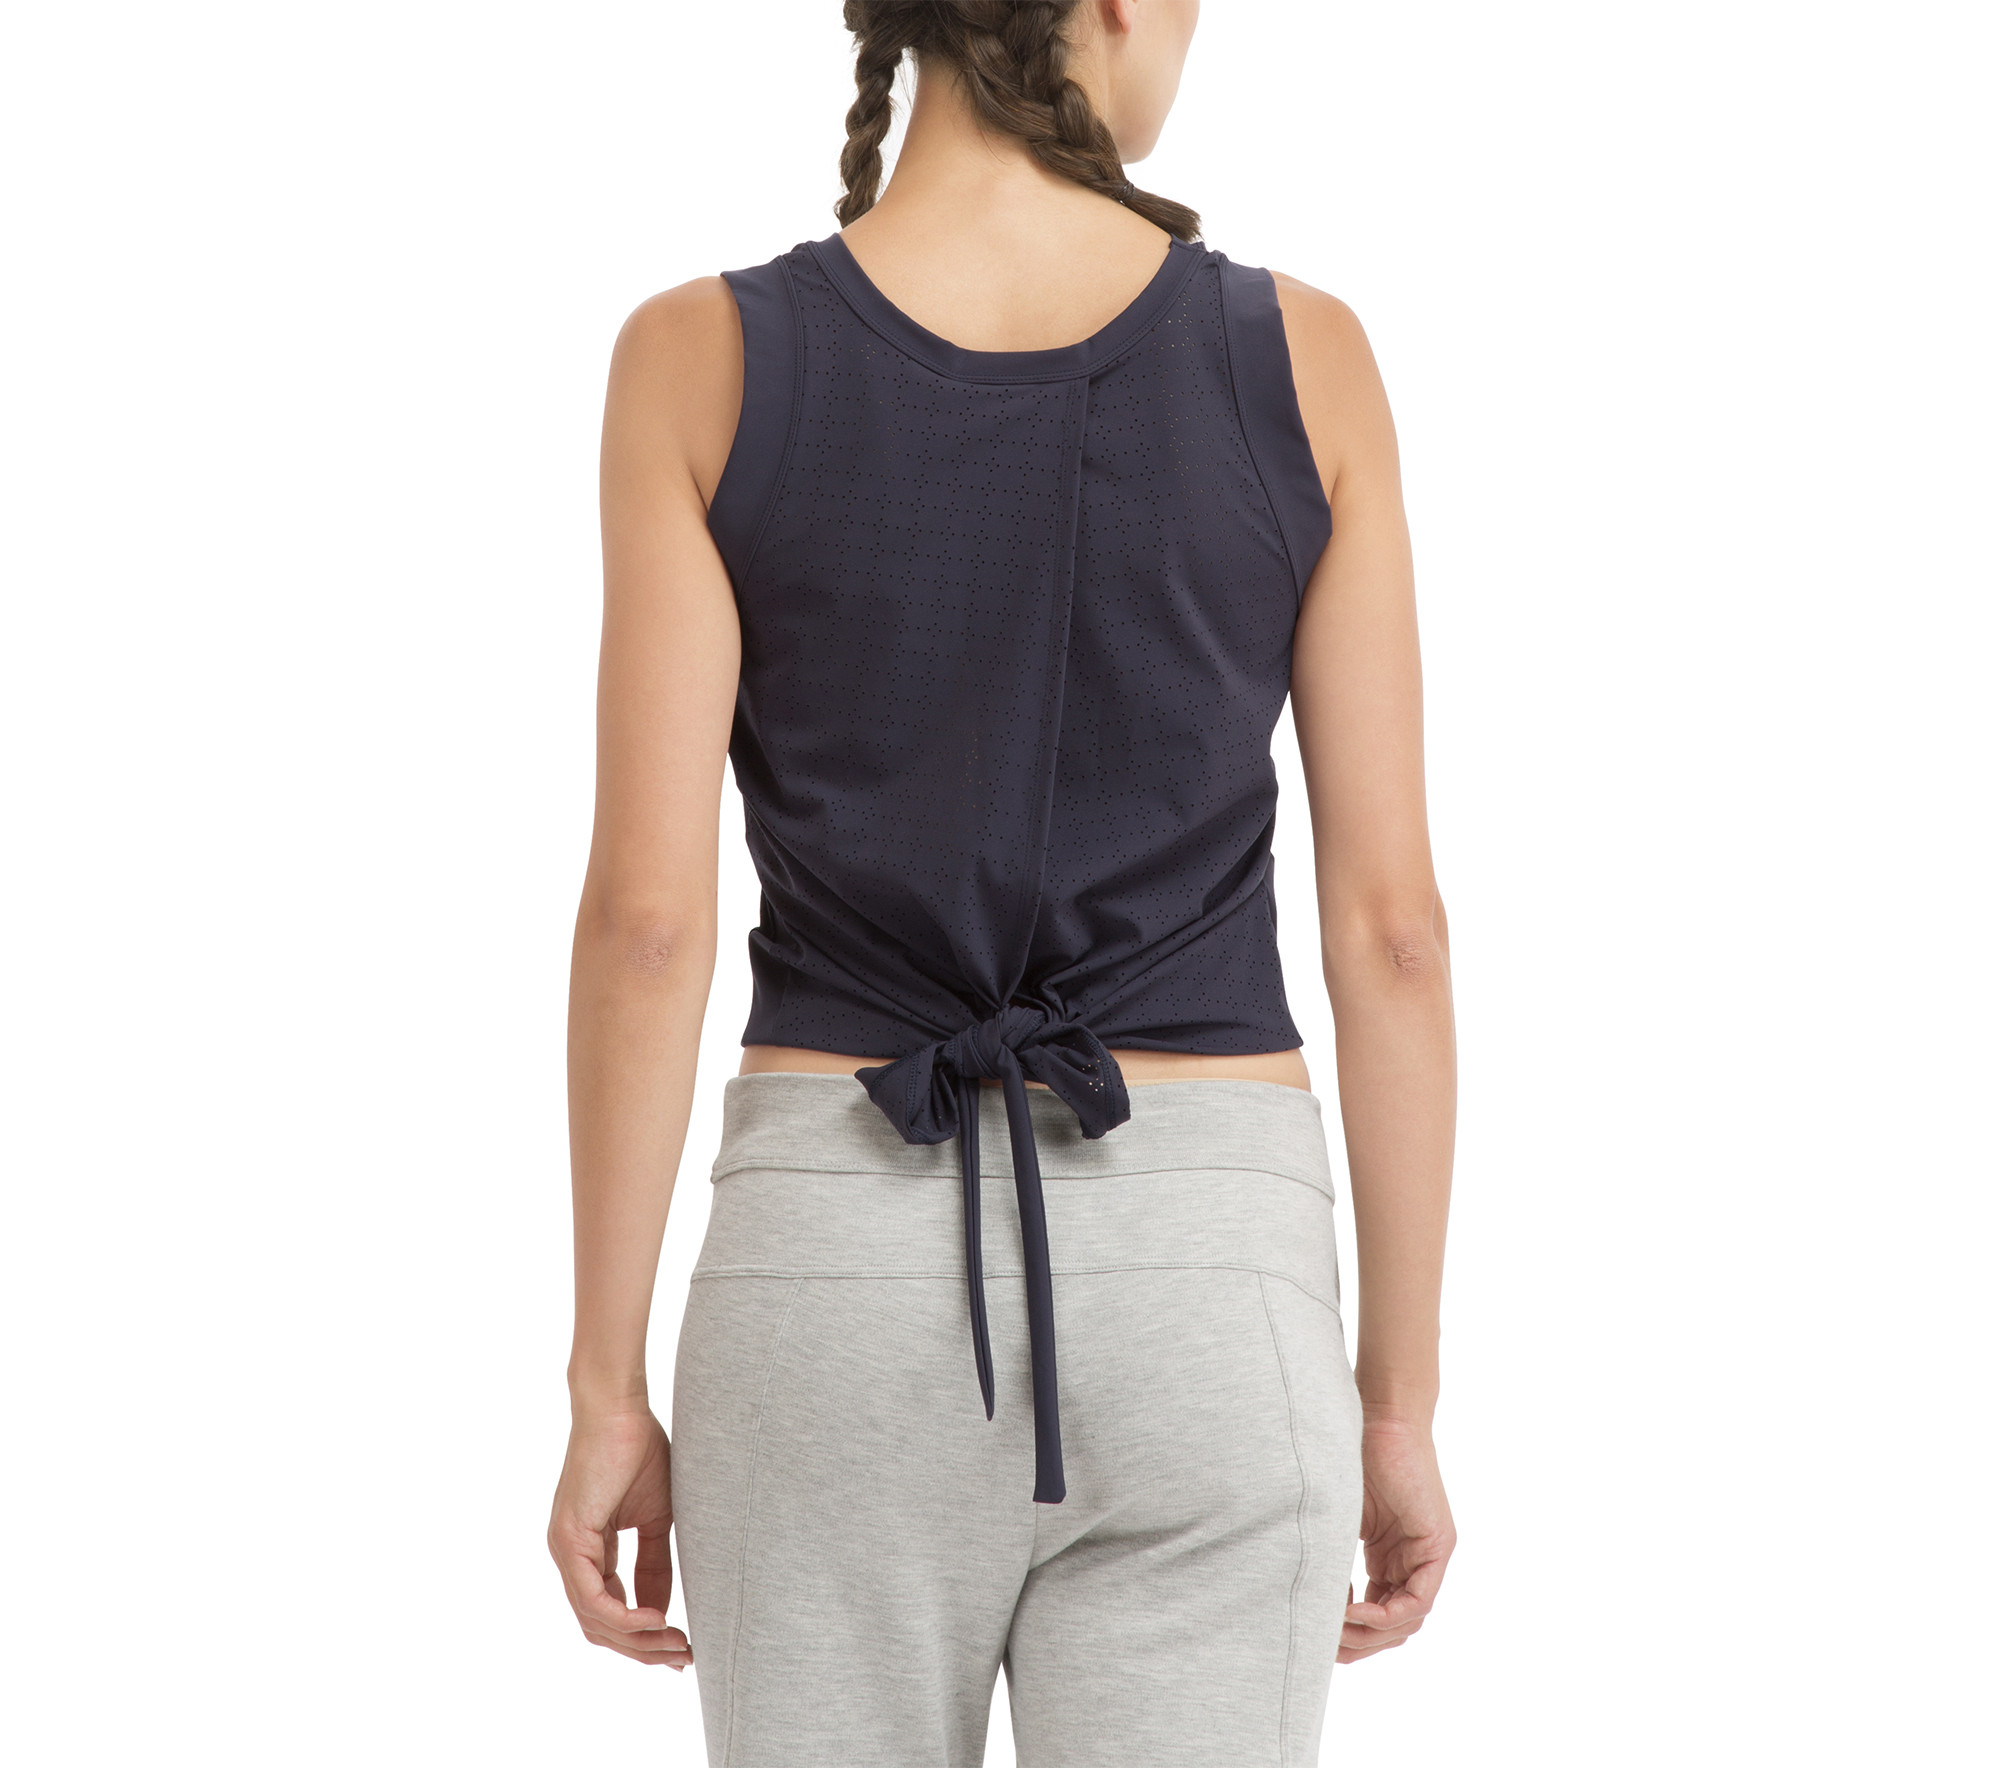 High stretch top to tie